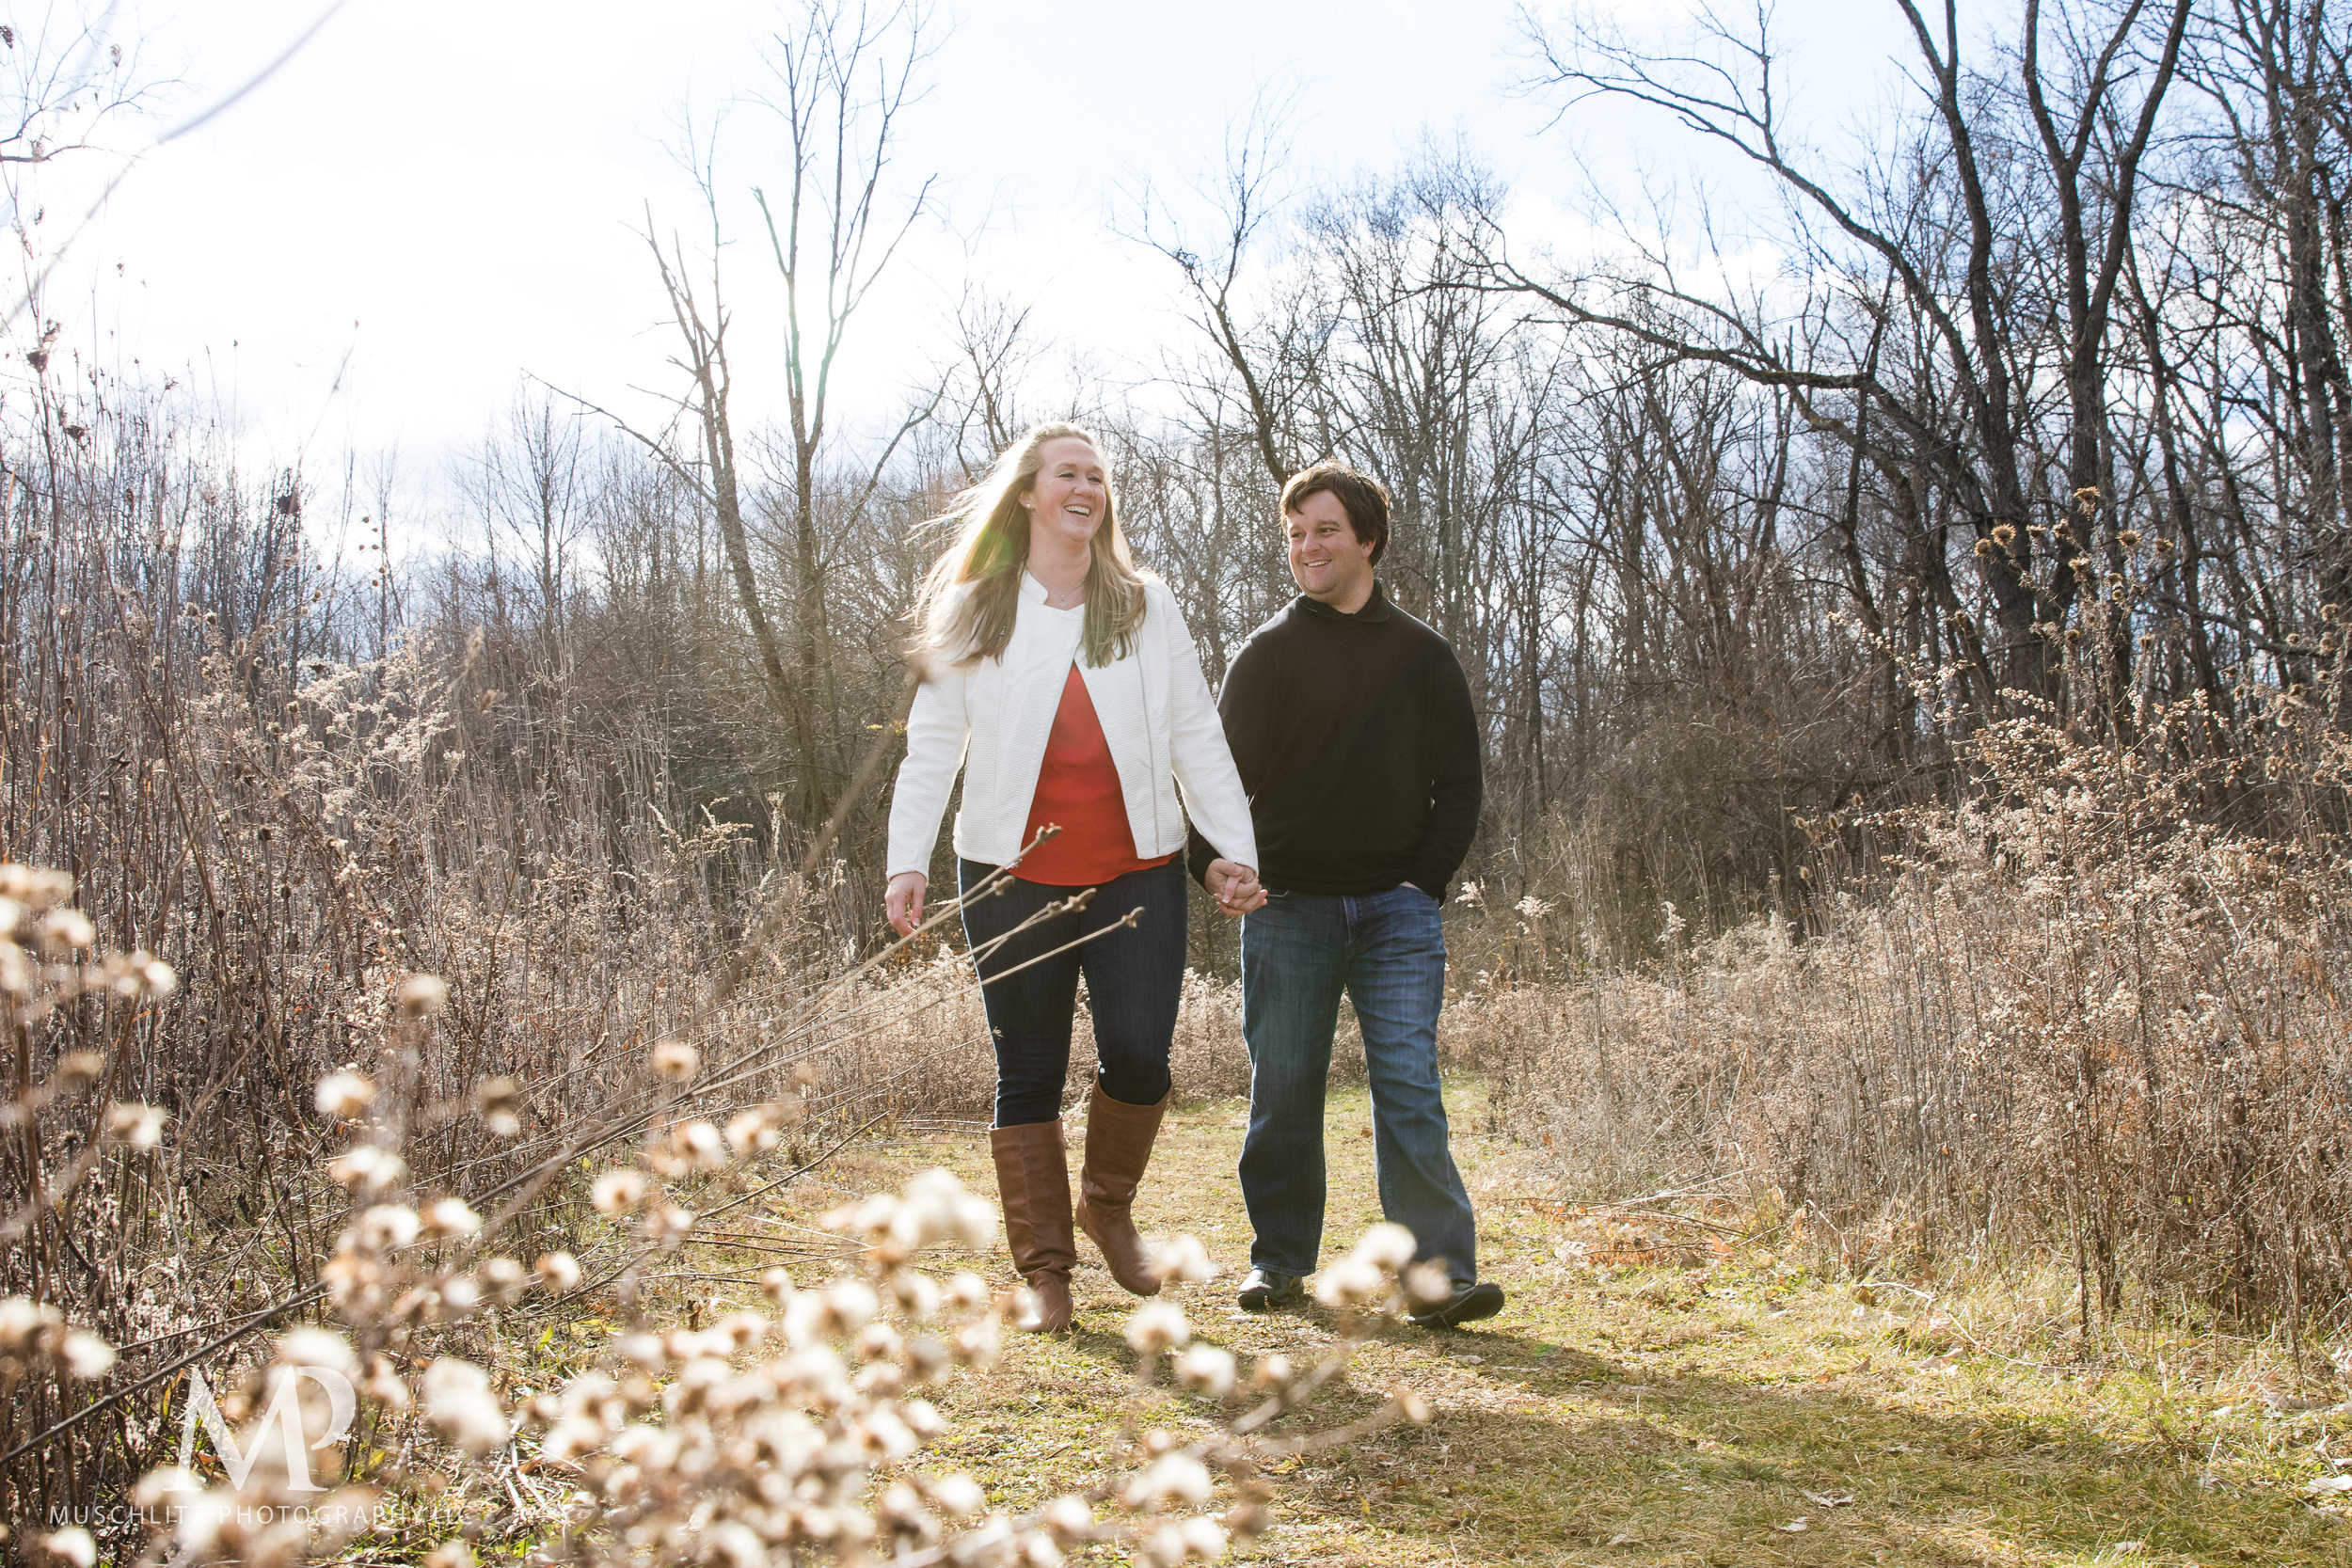 Gahanna-Columbus-Ohio-Winter-Engagement-Portrait-Photographer-Outdoors-muschlitz-photography014.JPG